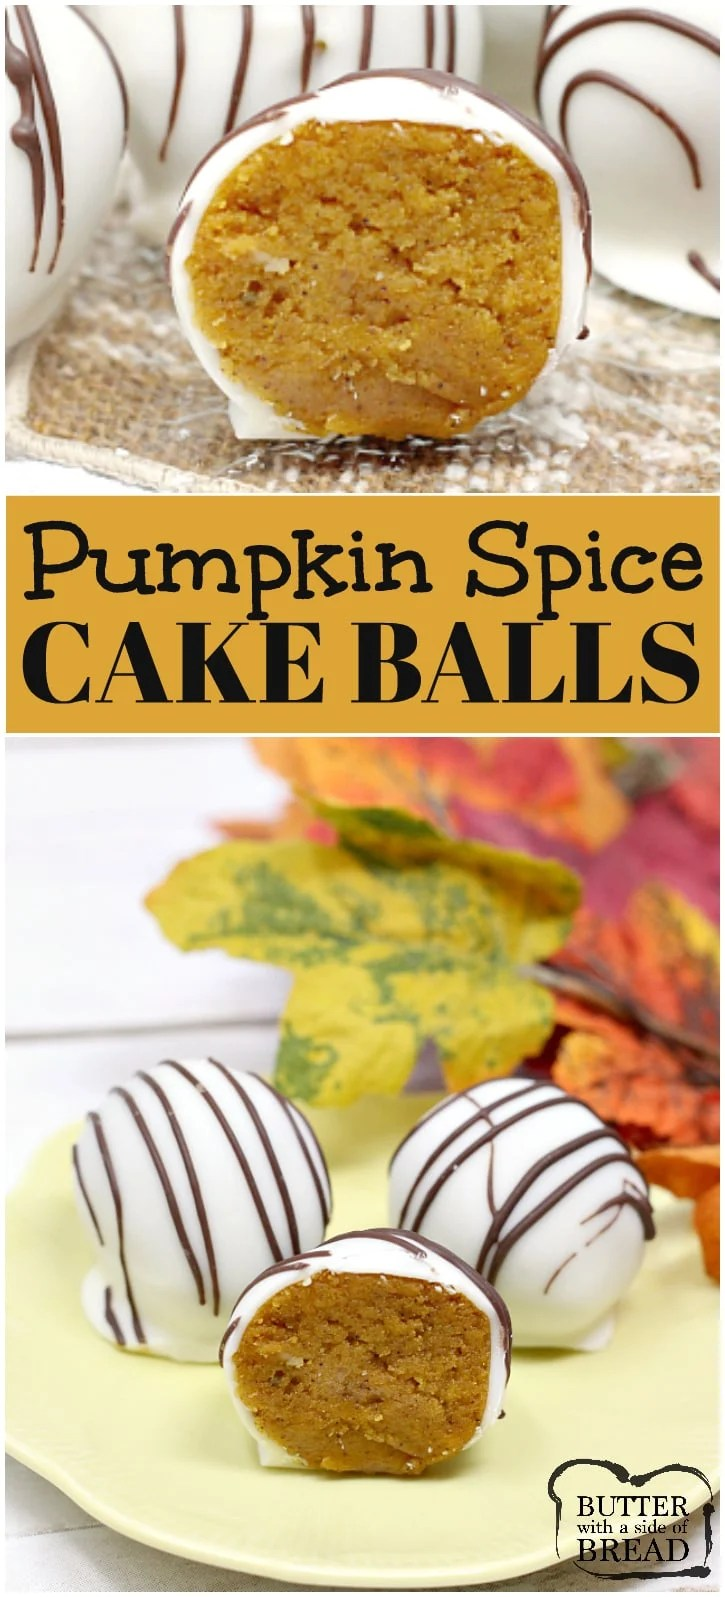 Pumpkin Spice Cake Balls are delicious little bites made of pumpkin cake mixed with cream cheese frosting and then coated in white chocolate!